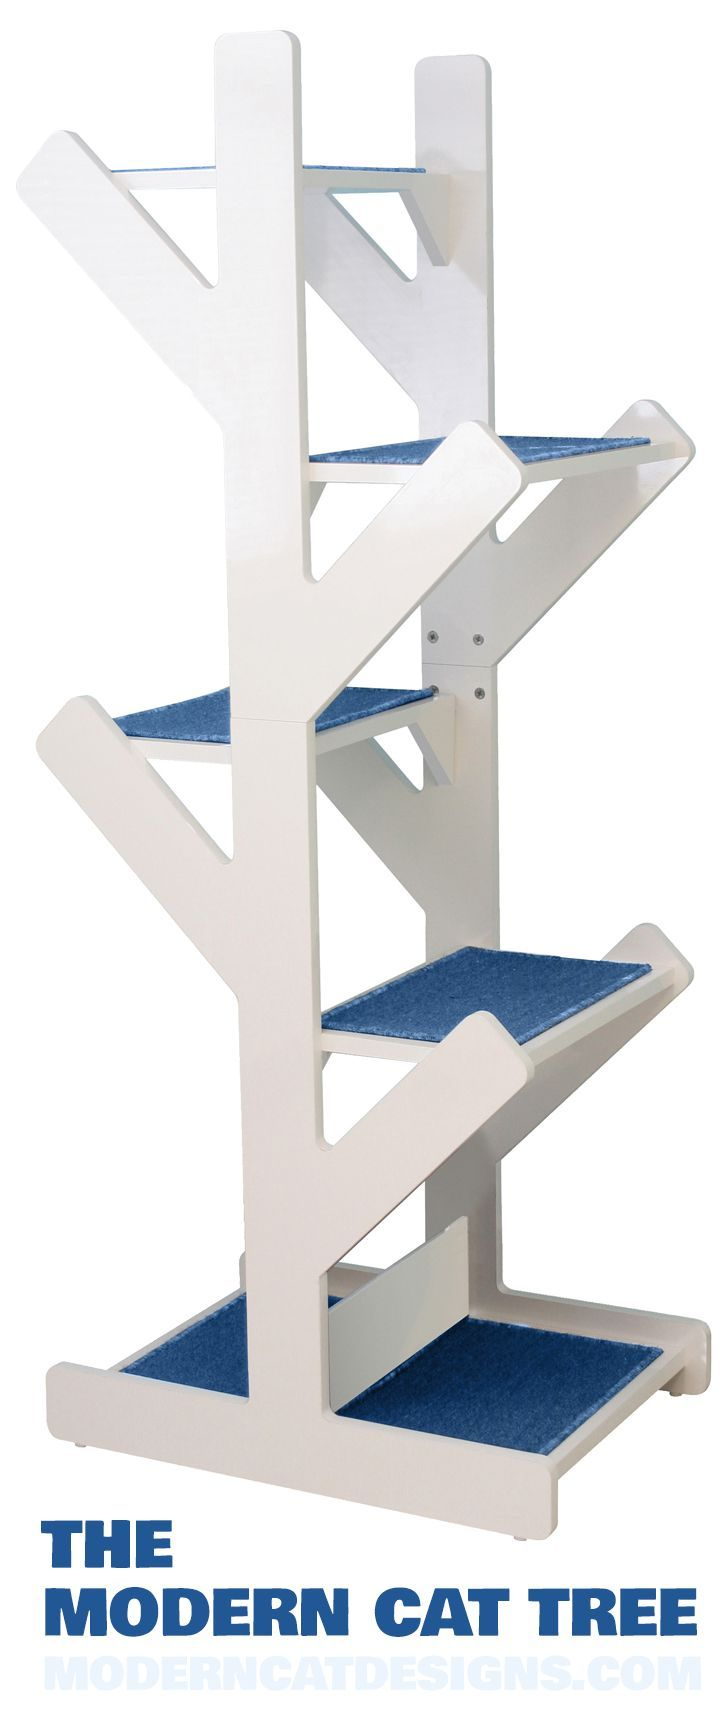 Cat Tree For Today's Cats:) #cat #cattree #modern